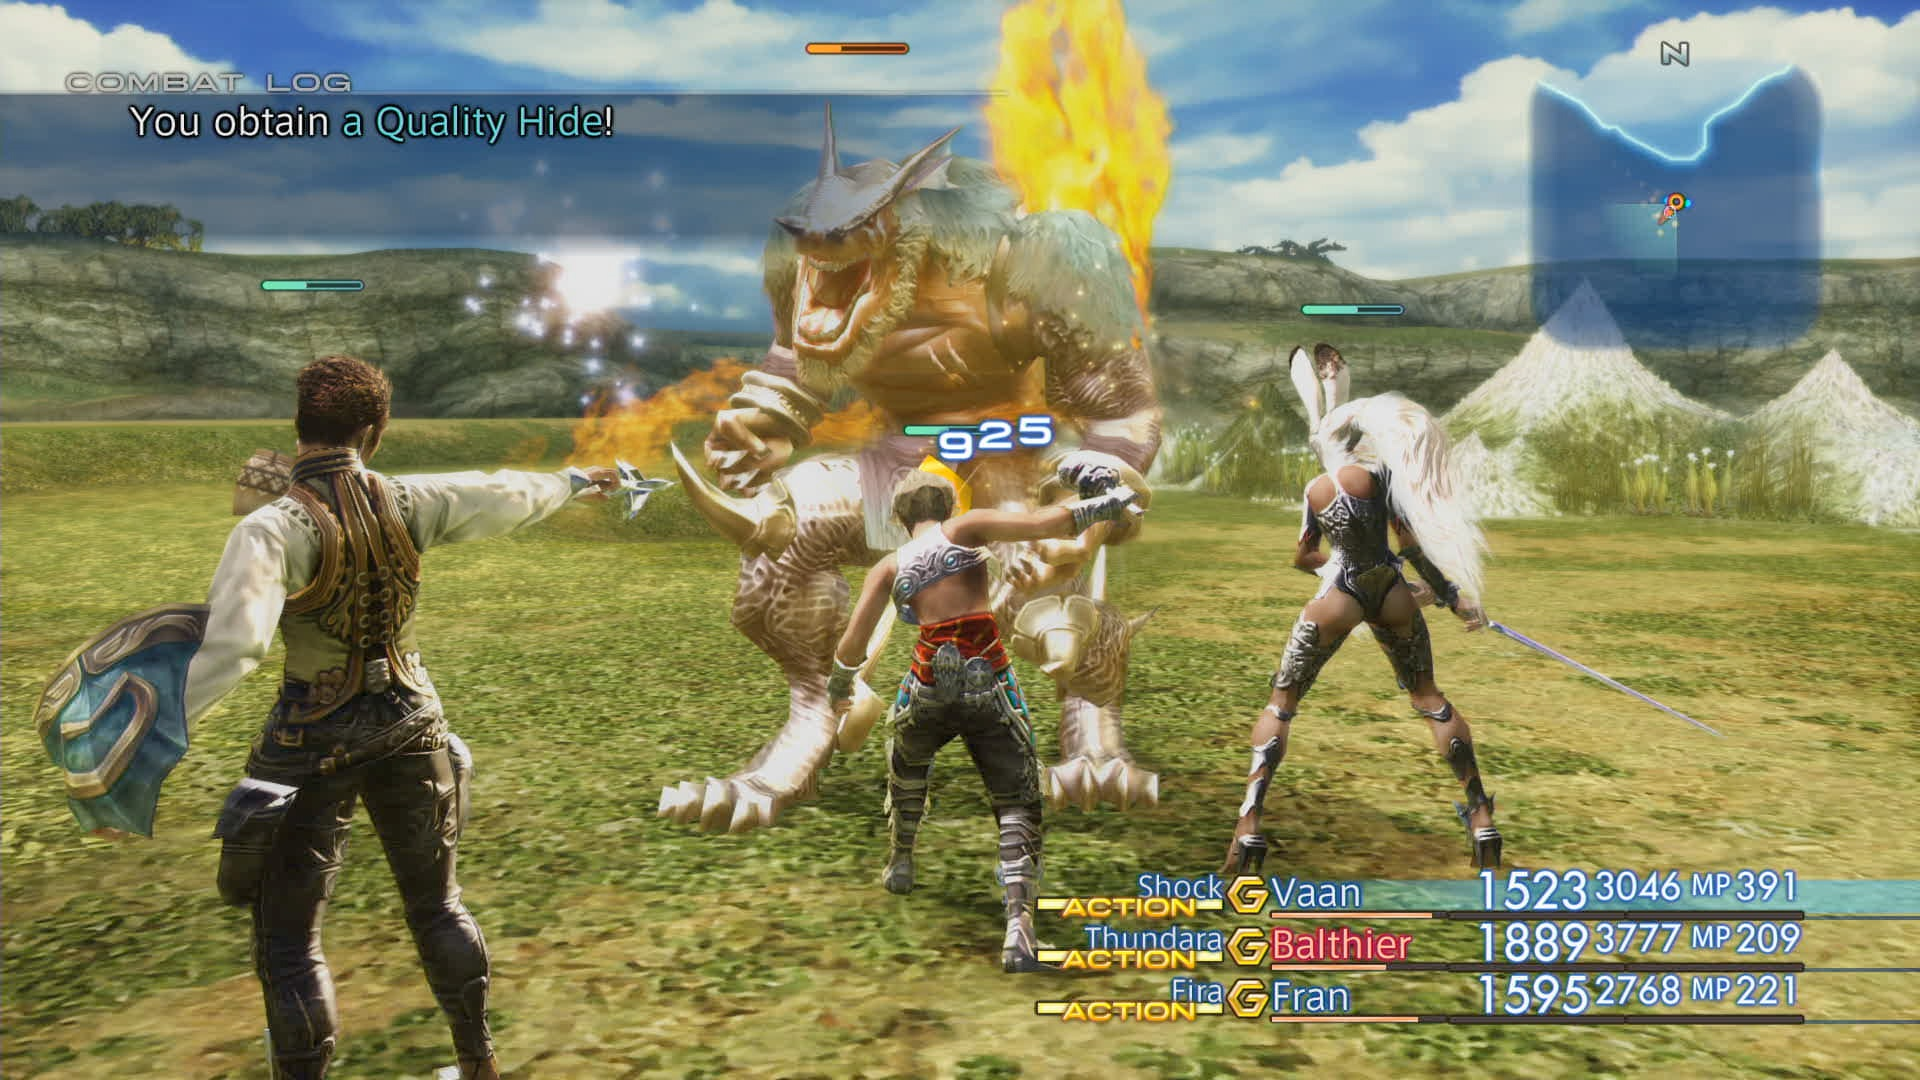 Final Fantasy X/X-2 and XII are really solid on Nintendo Switch